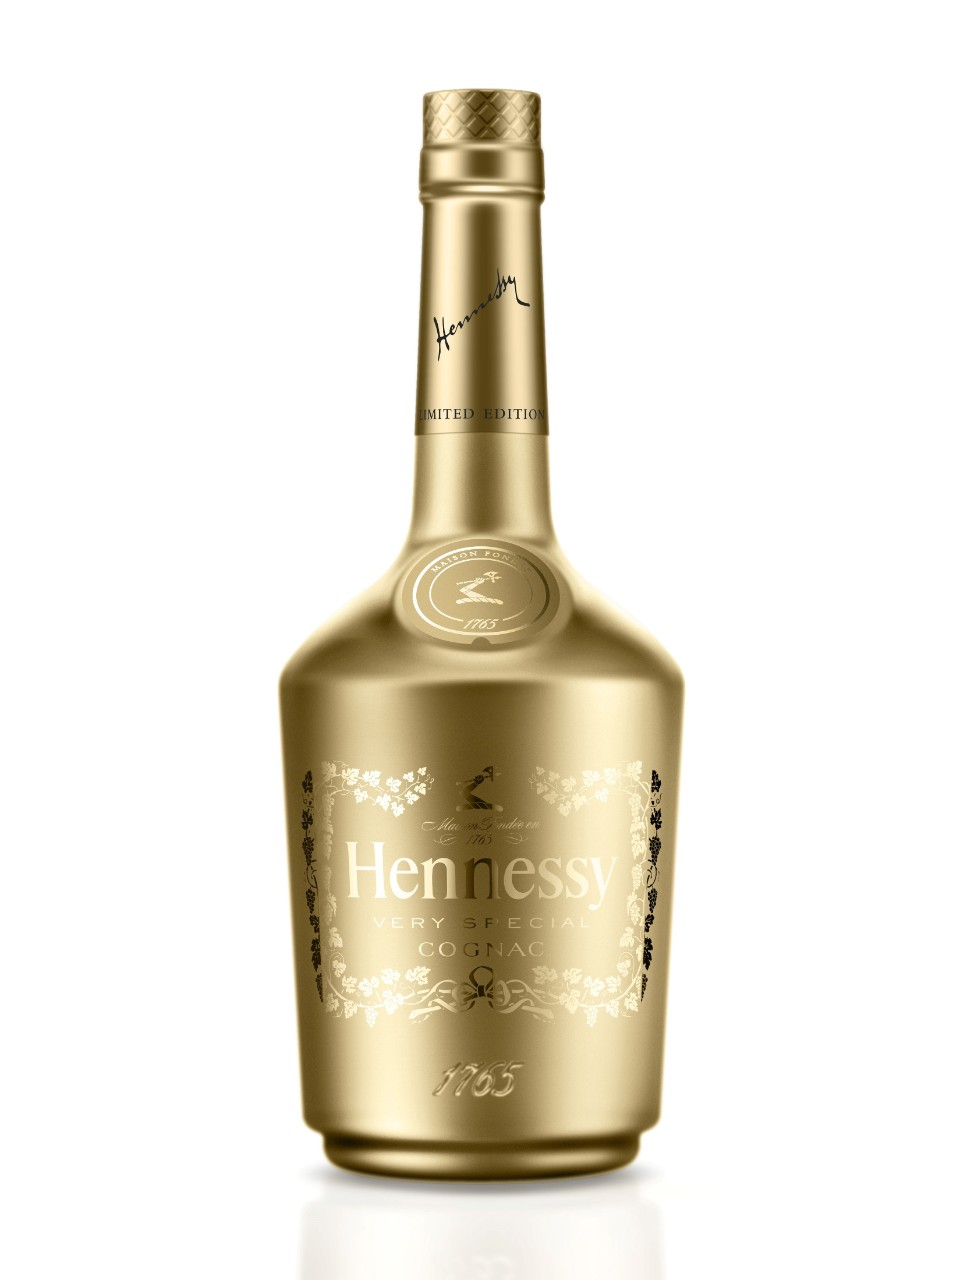 Hennessy Vs Gold Bottle from LCBO